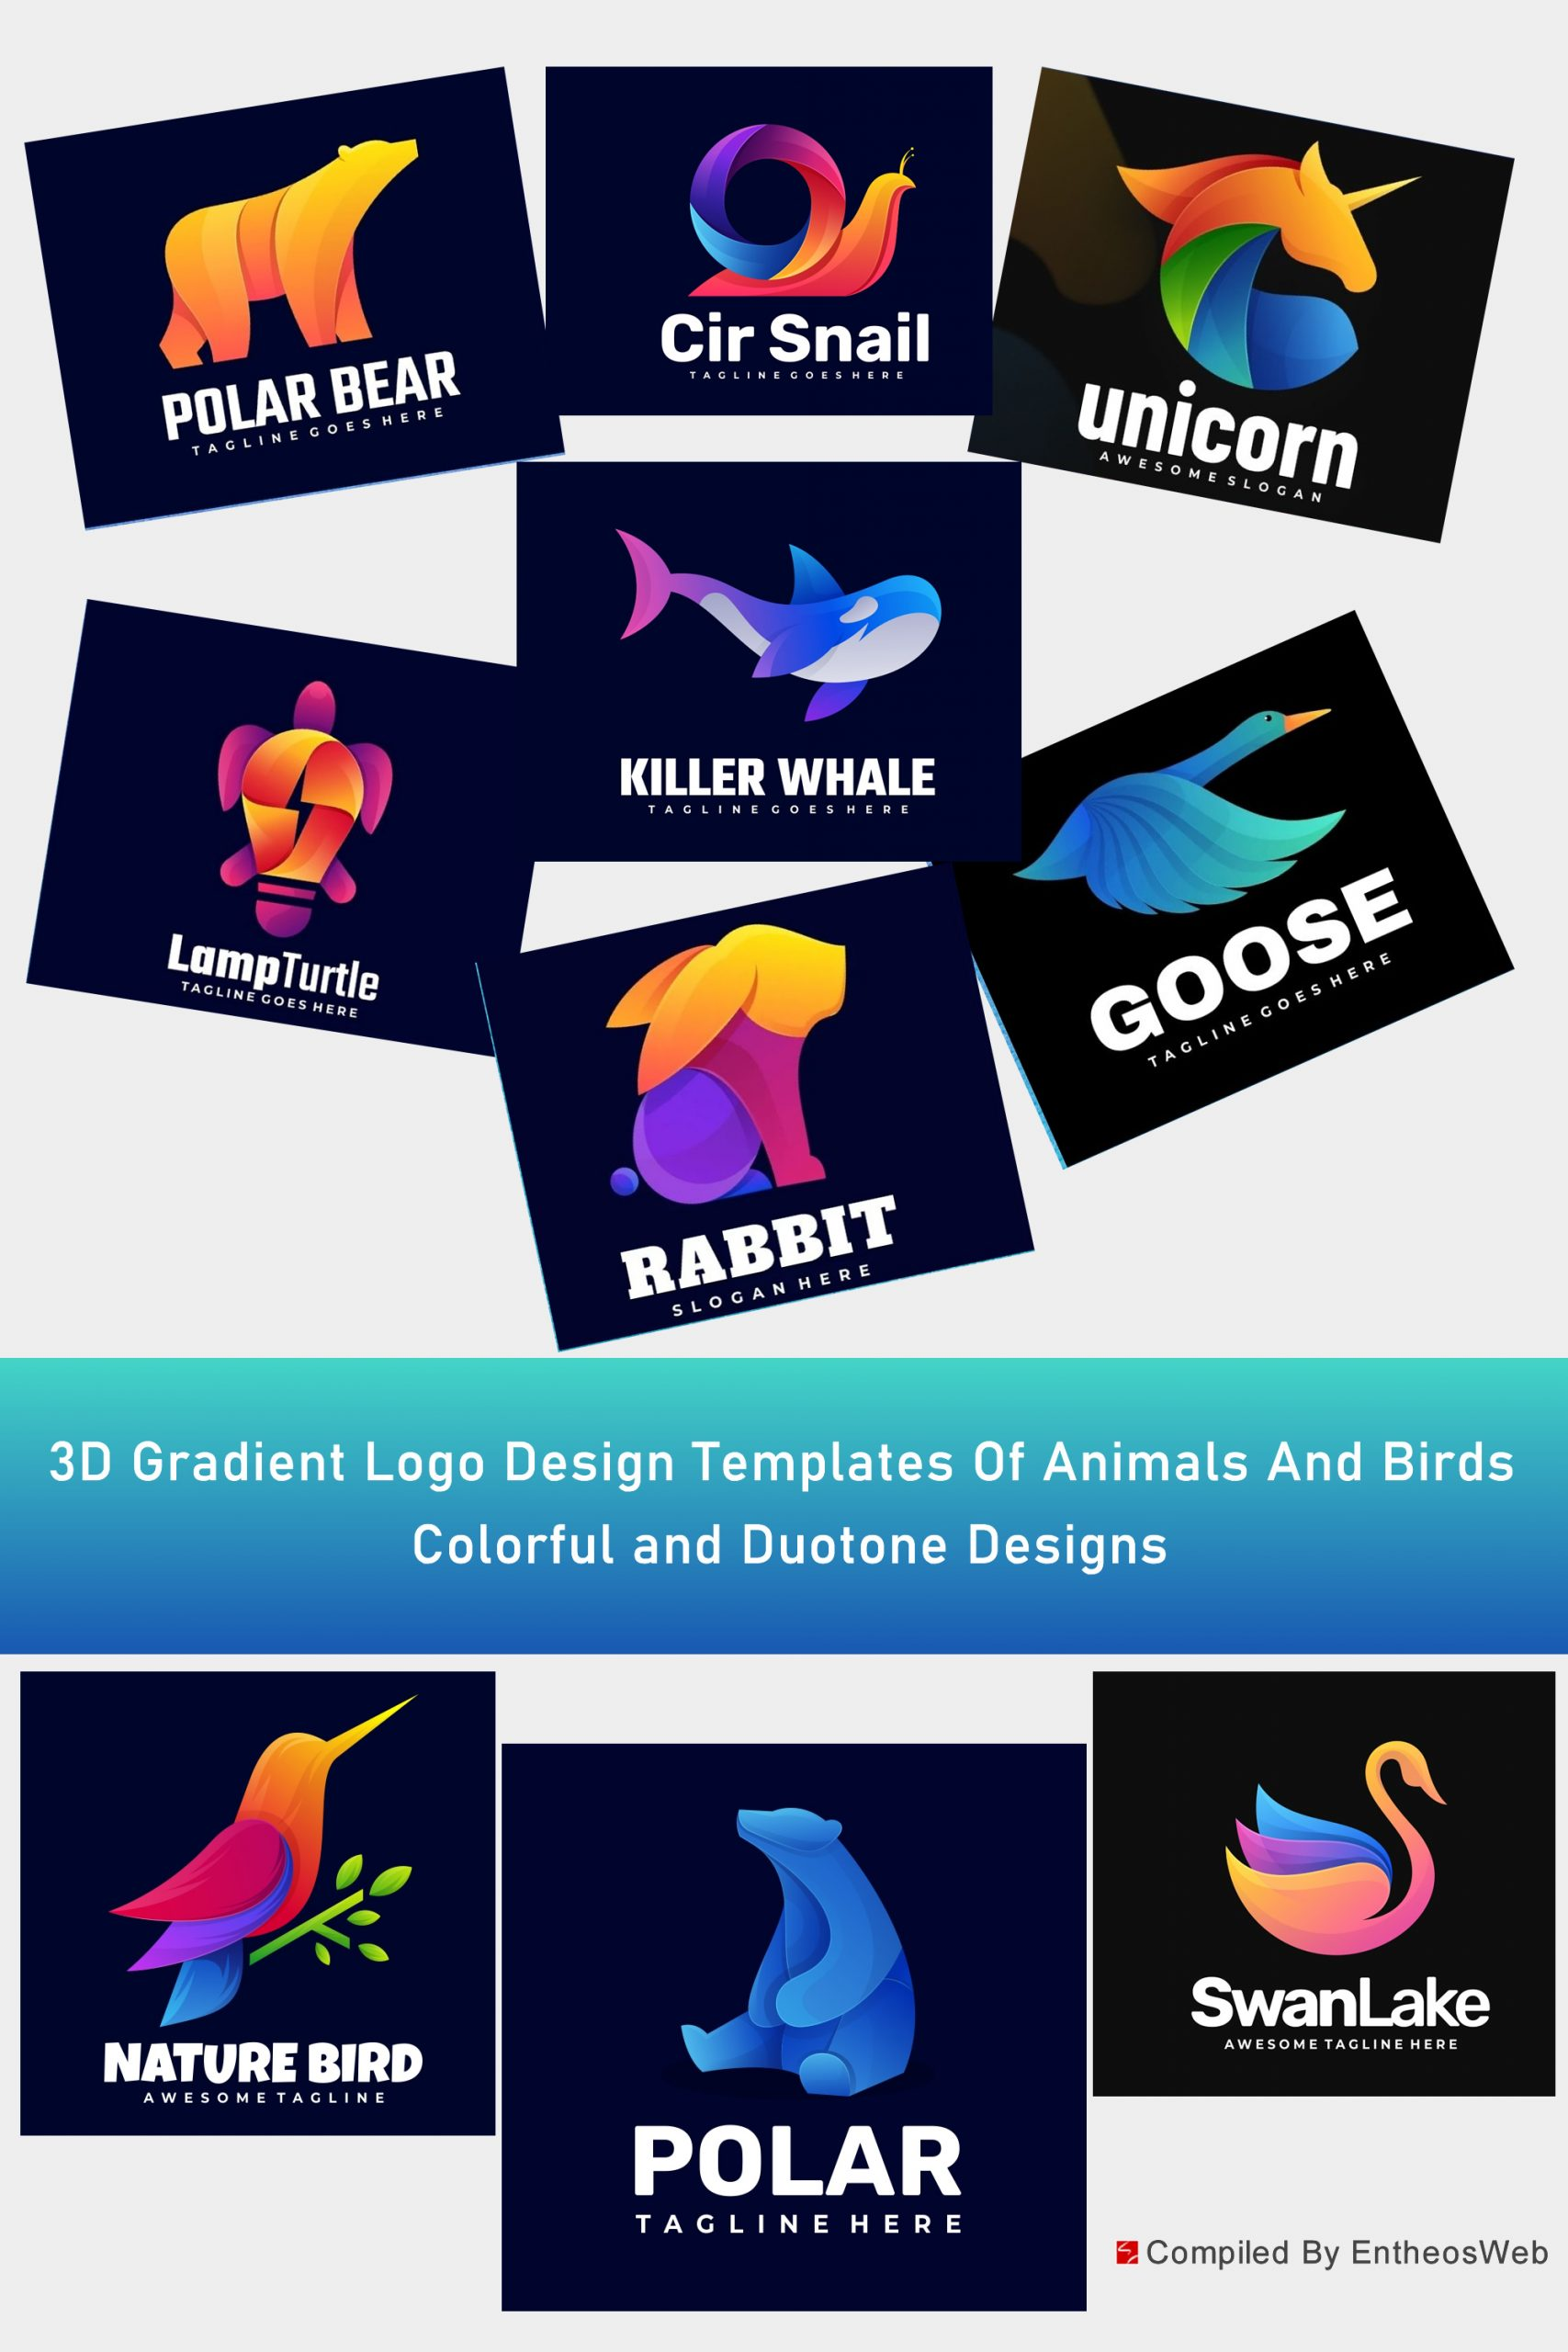 Stunning 3D Gradient Logo Design Templates Of Animals And Birds - Colorful and Duotone Designs